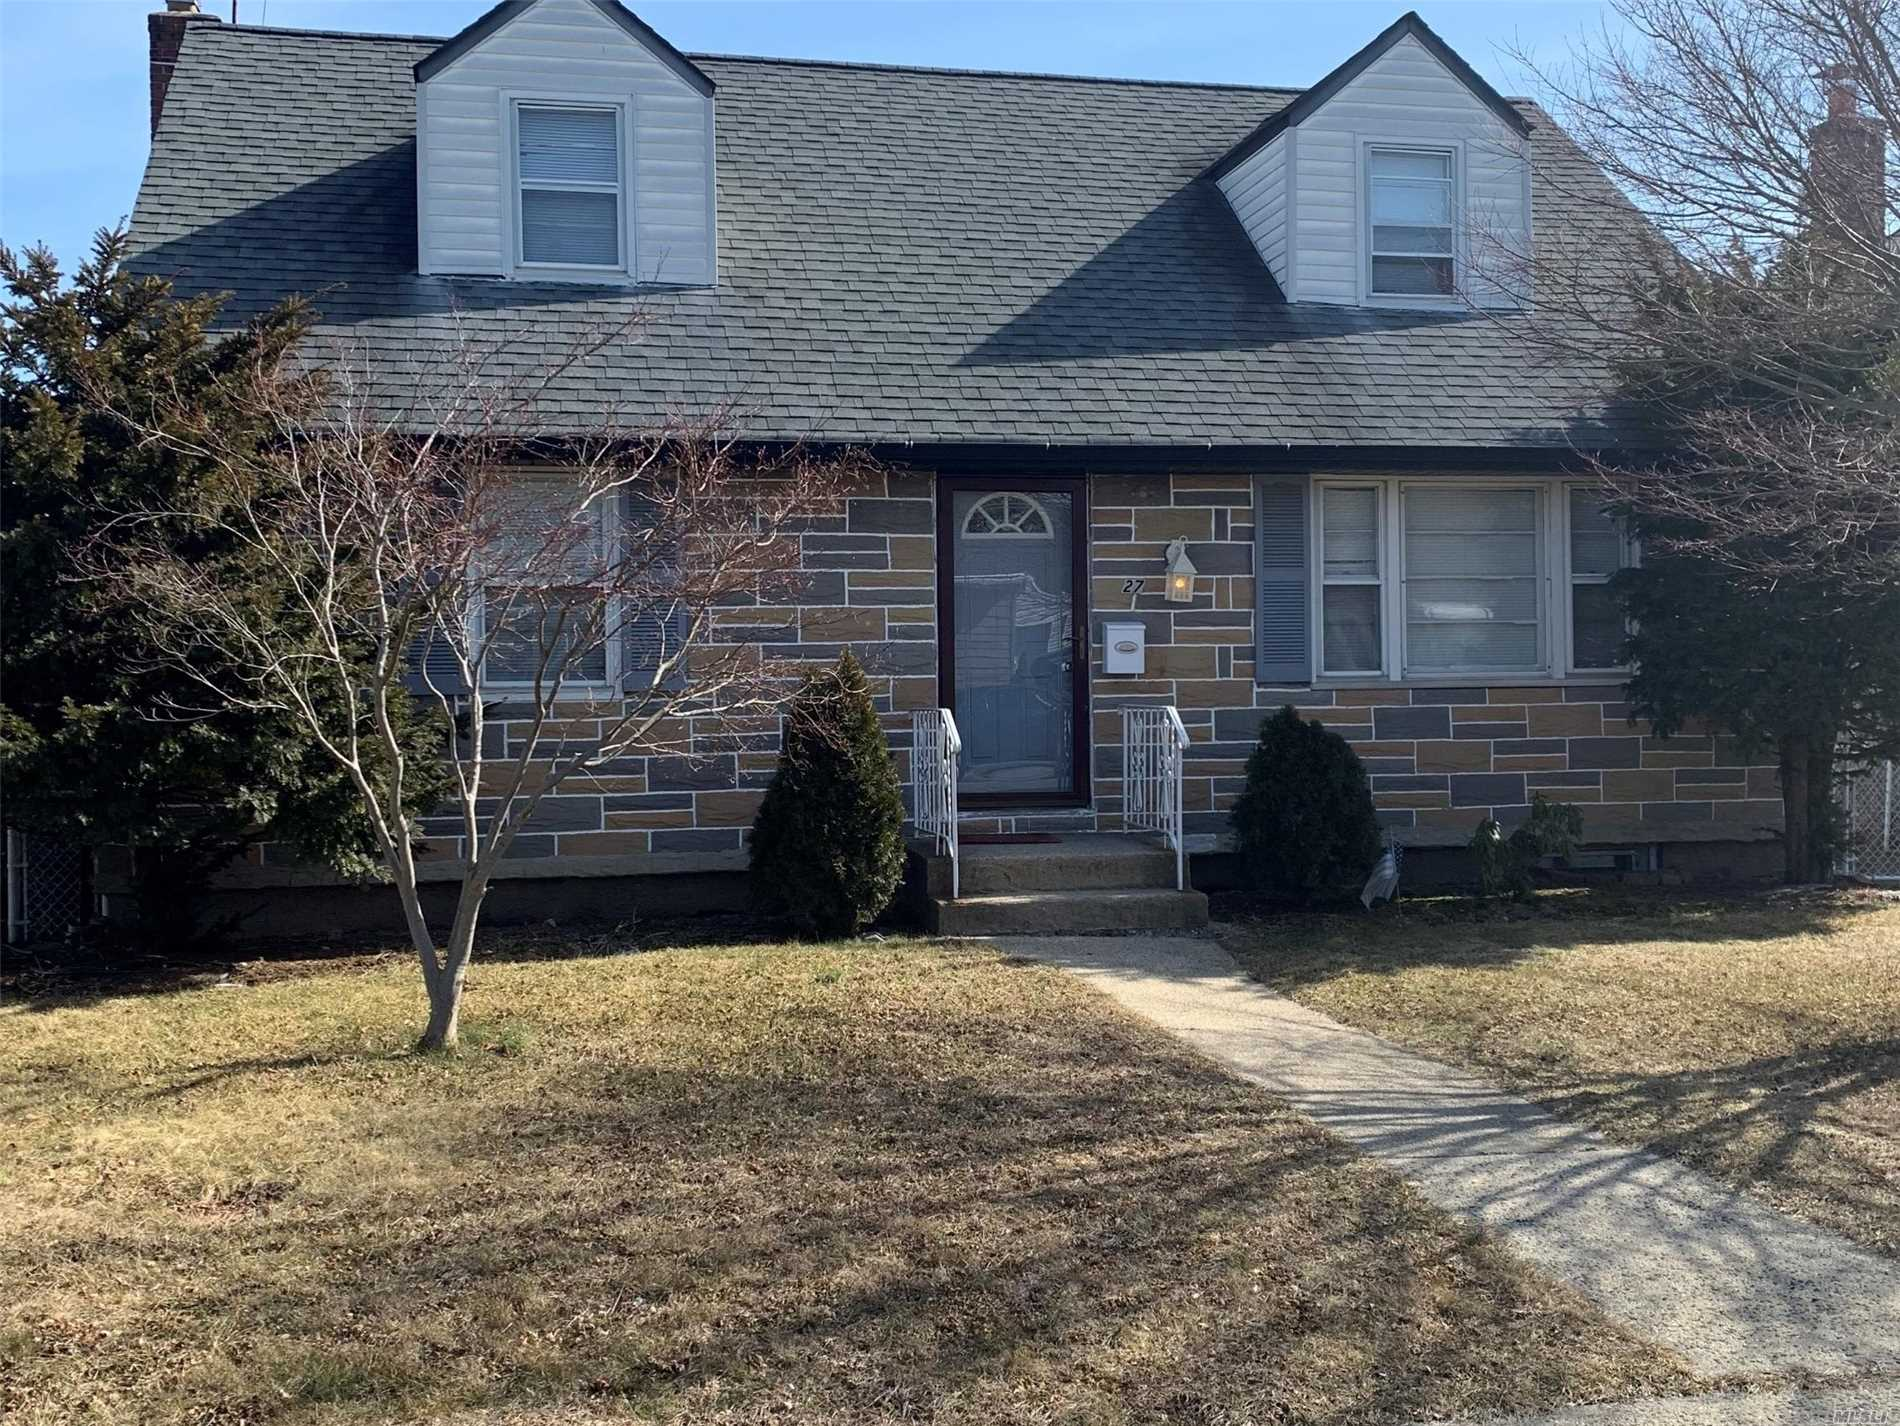 Clean And Nice Expanded Home With Formal Dining, Eat In Kitchen, Garage Finishe Bsmt, Excellent Location